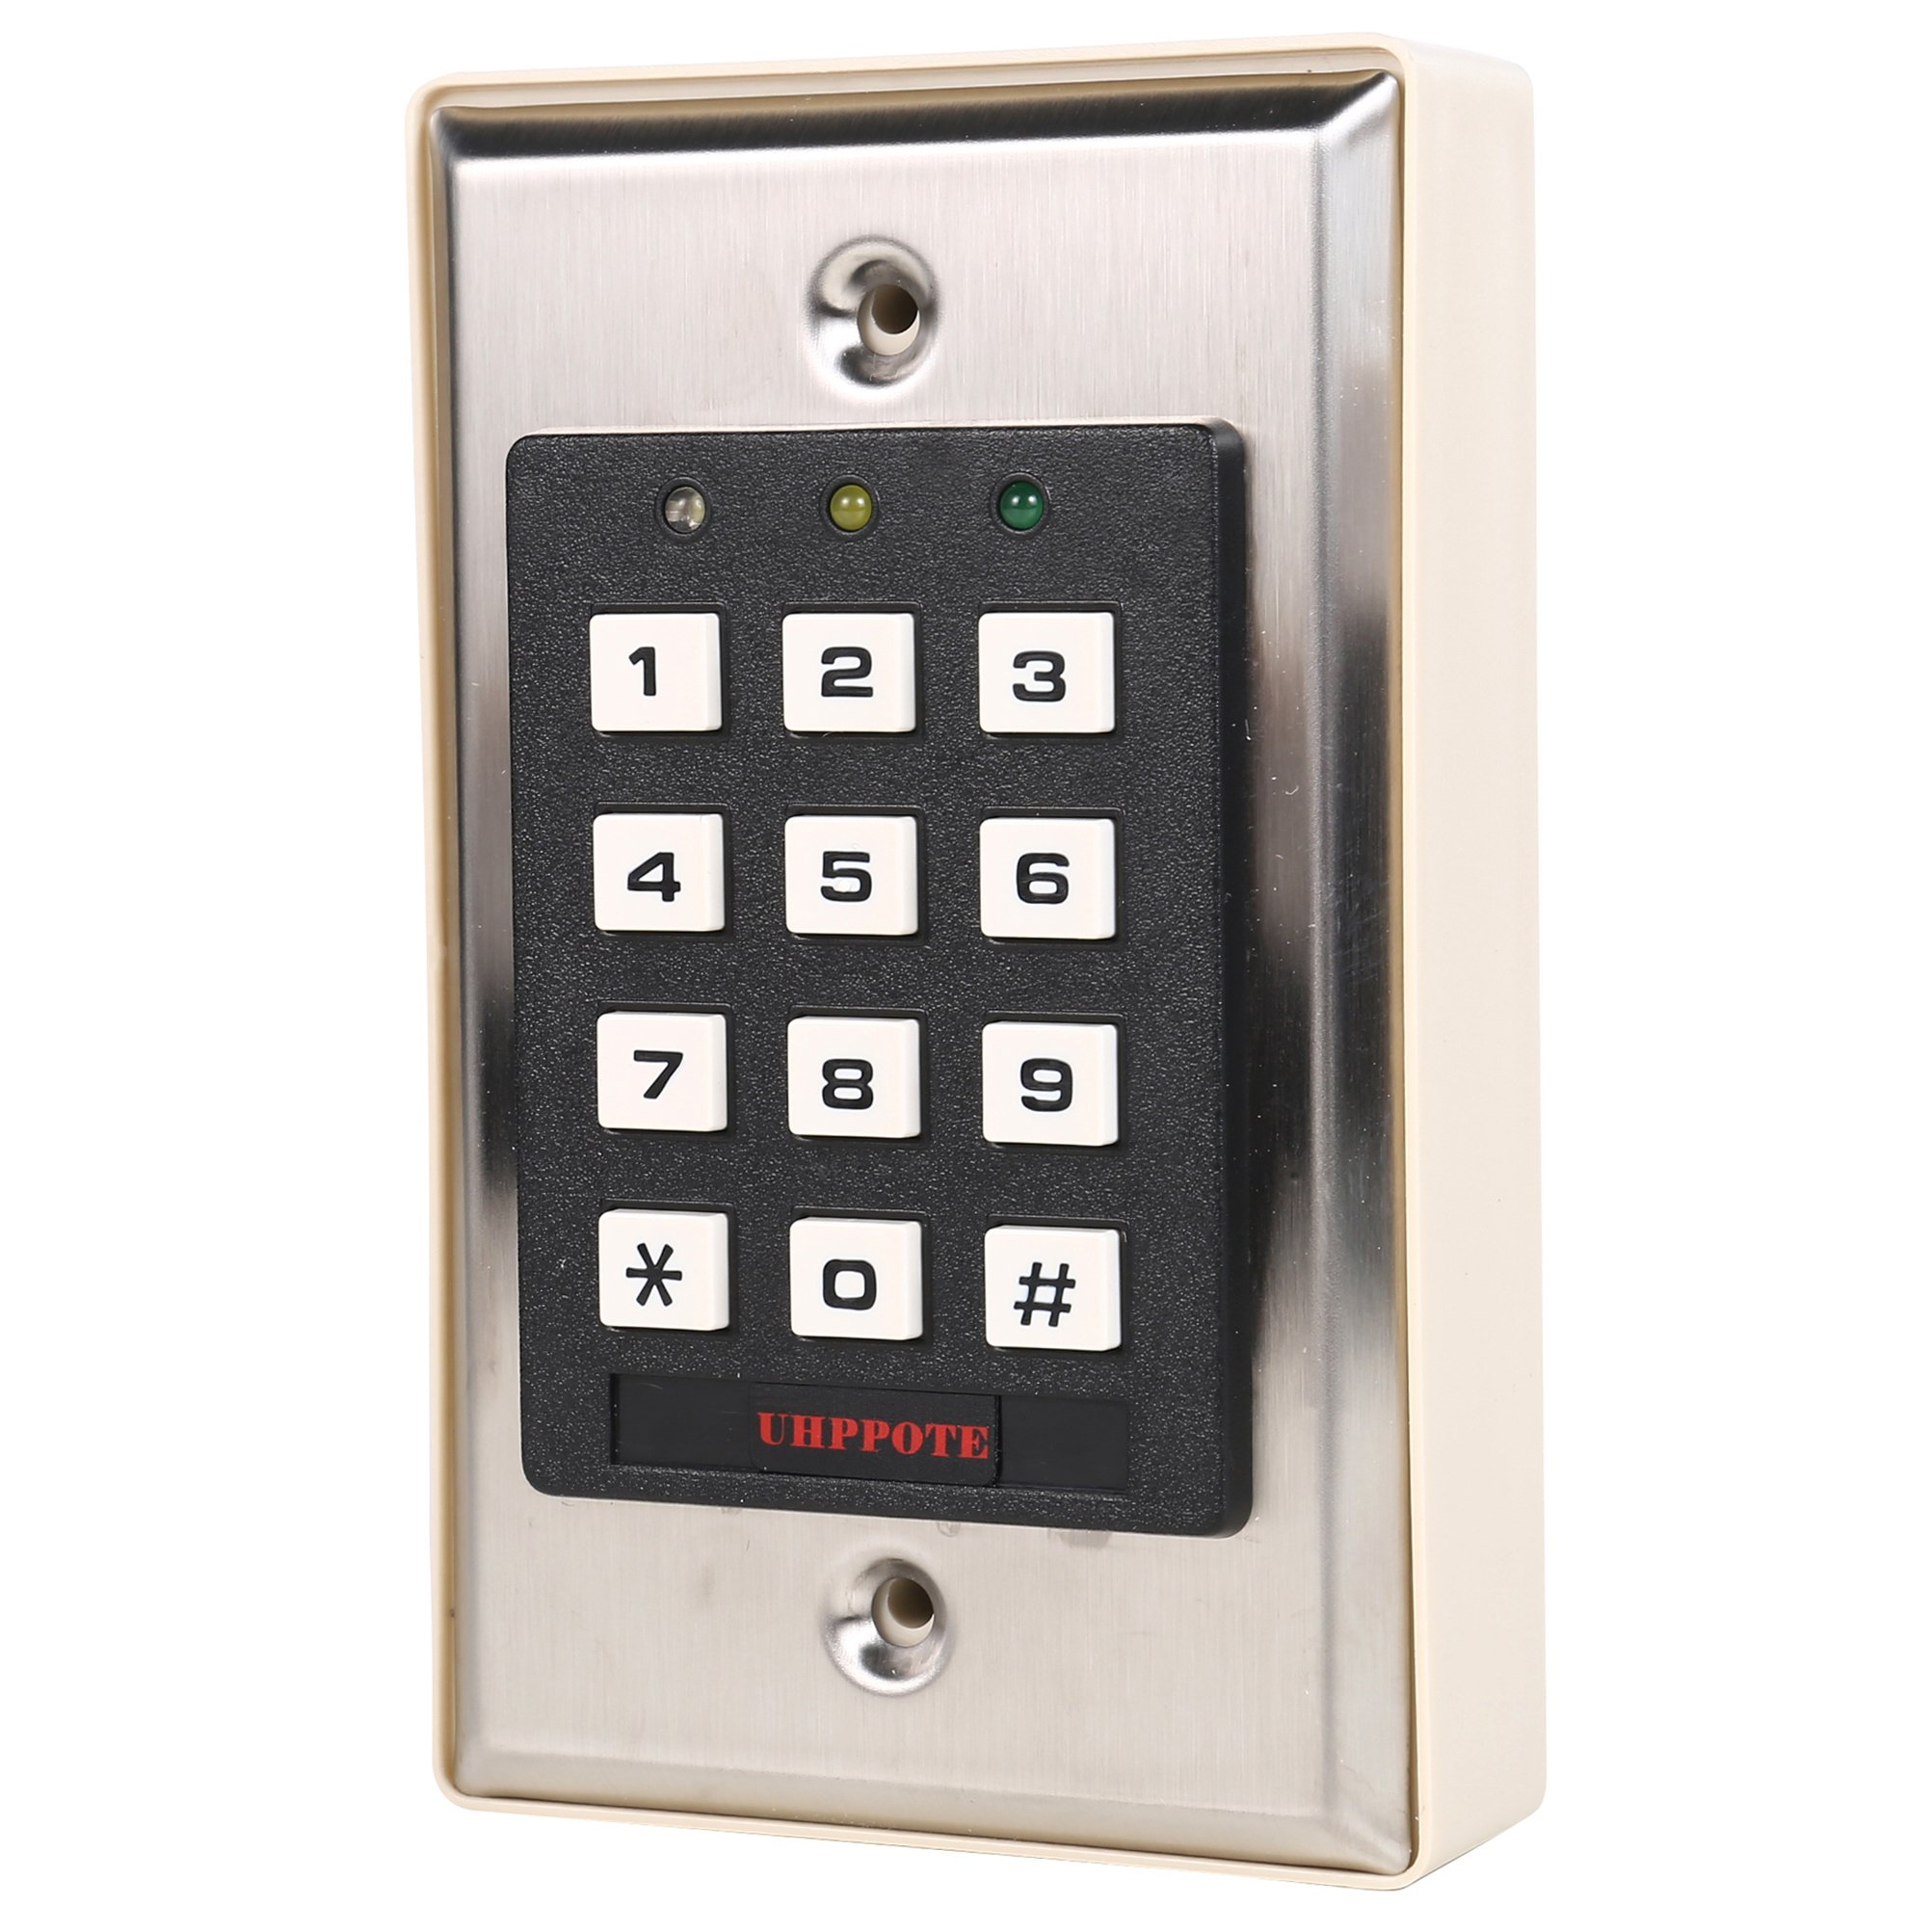 UHPPOTE Luminous Backlight RFID Digital Access Control Keypad Card/Code/Card+Code